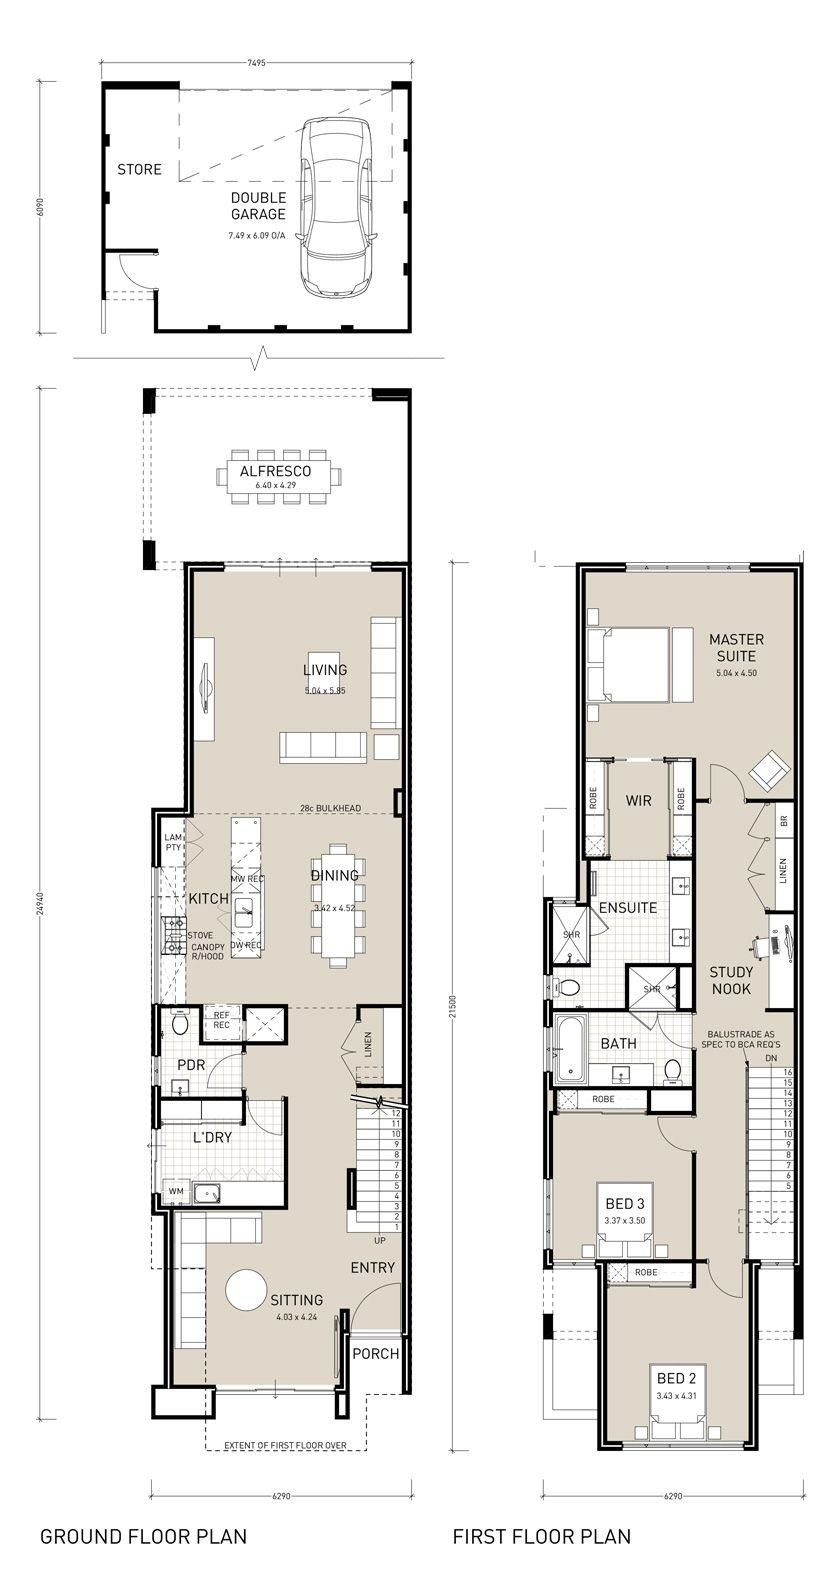 2 Bedroom townhouse Designs Inspirational Quattro Ultimate